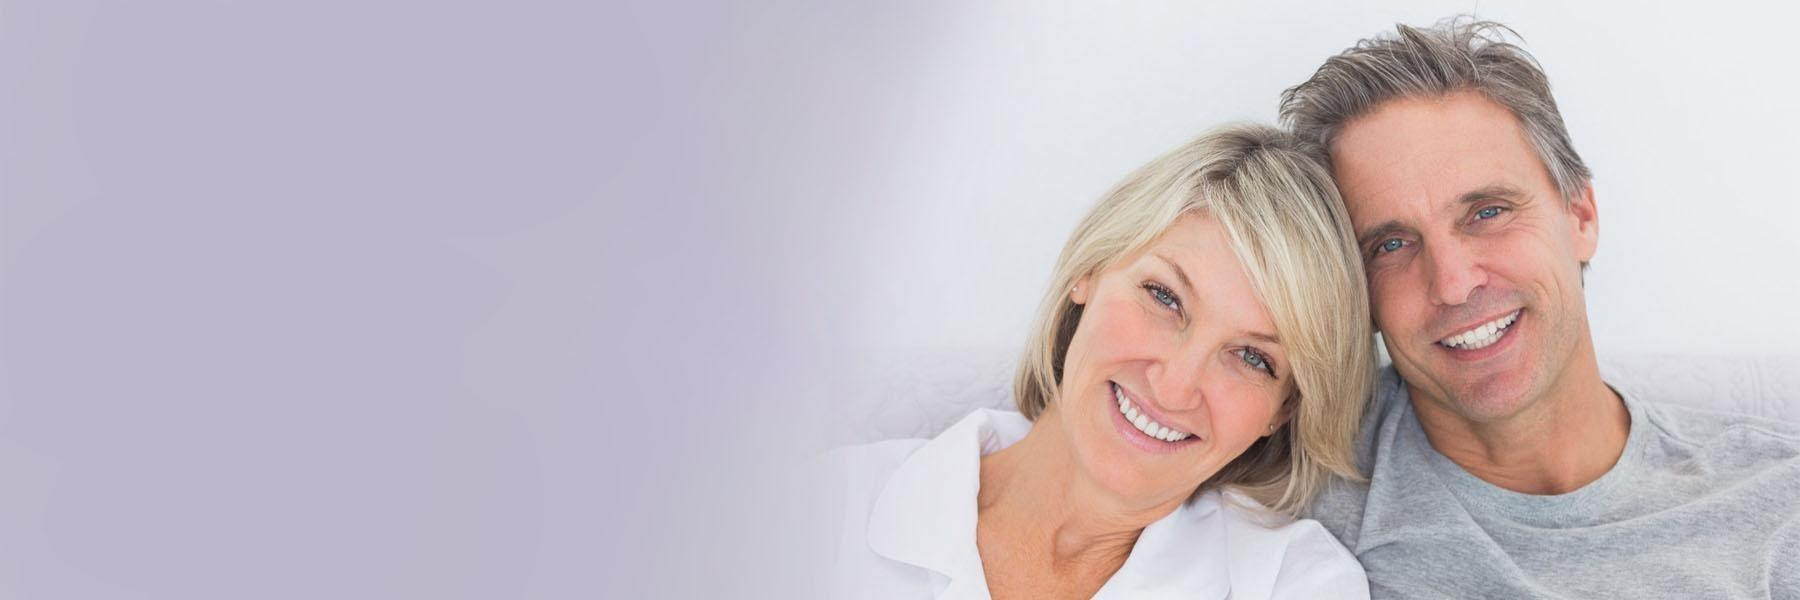 Full & Partial Dentures in West Chester, OH banner image